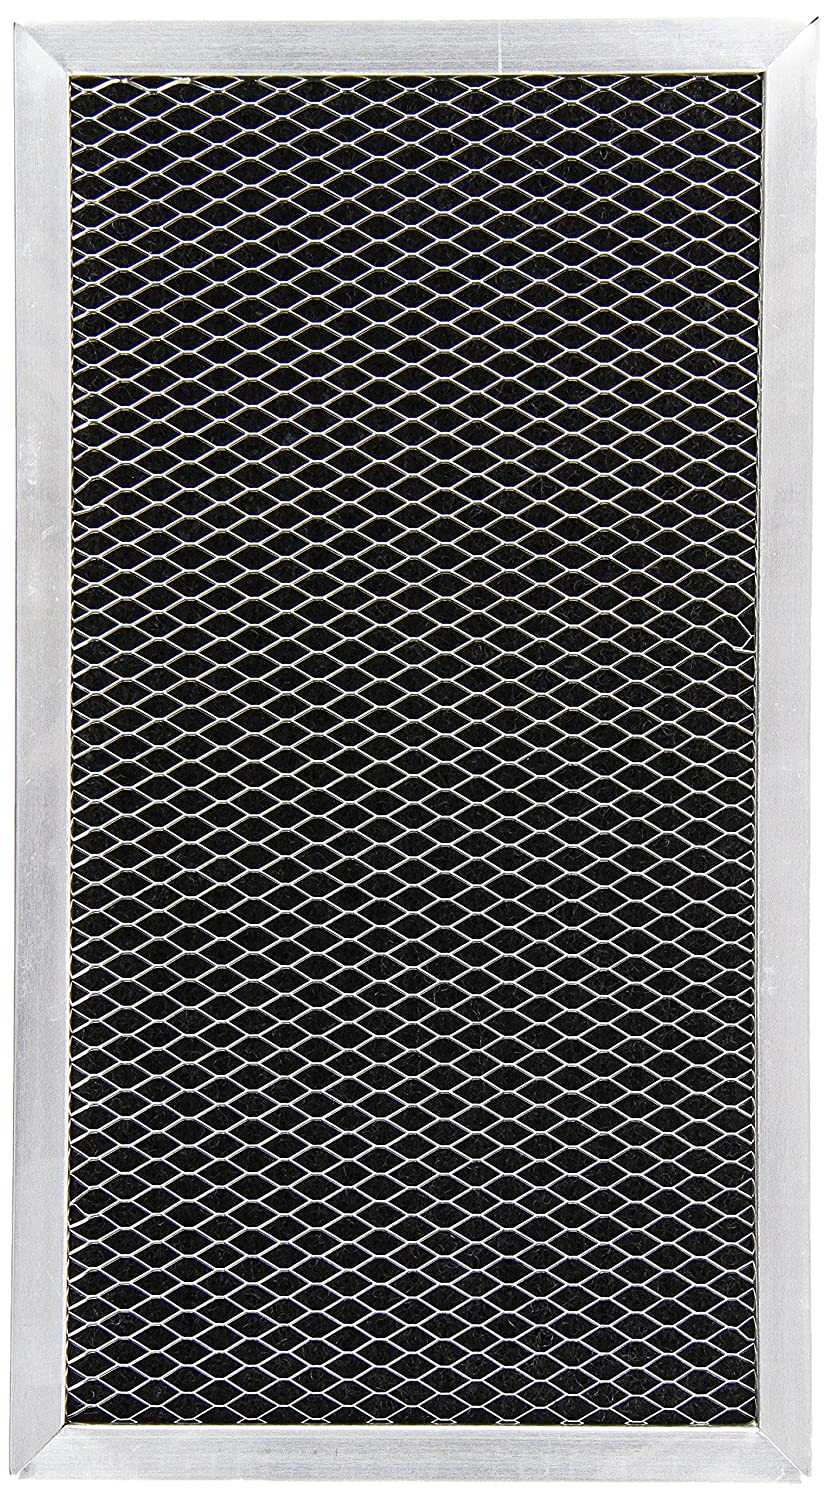 General Electric 22-WB2X9883 Microwave Charcoal Filter